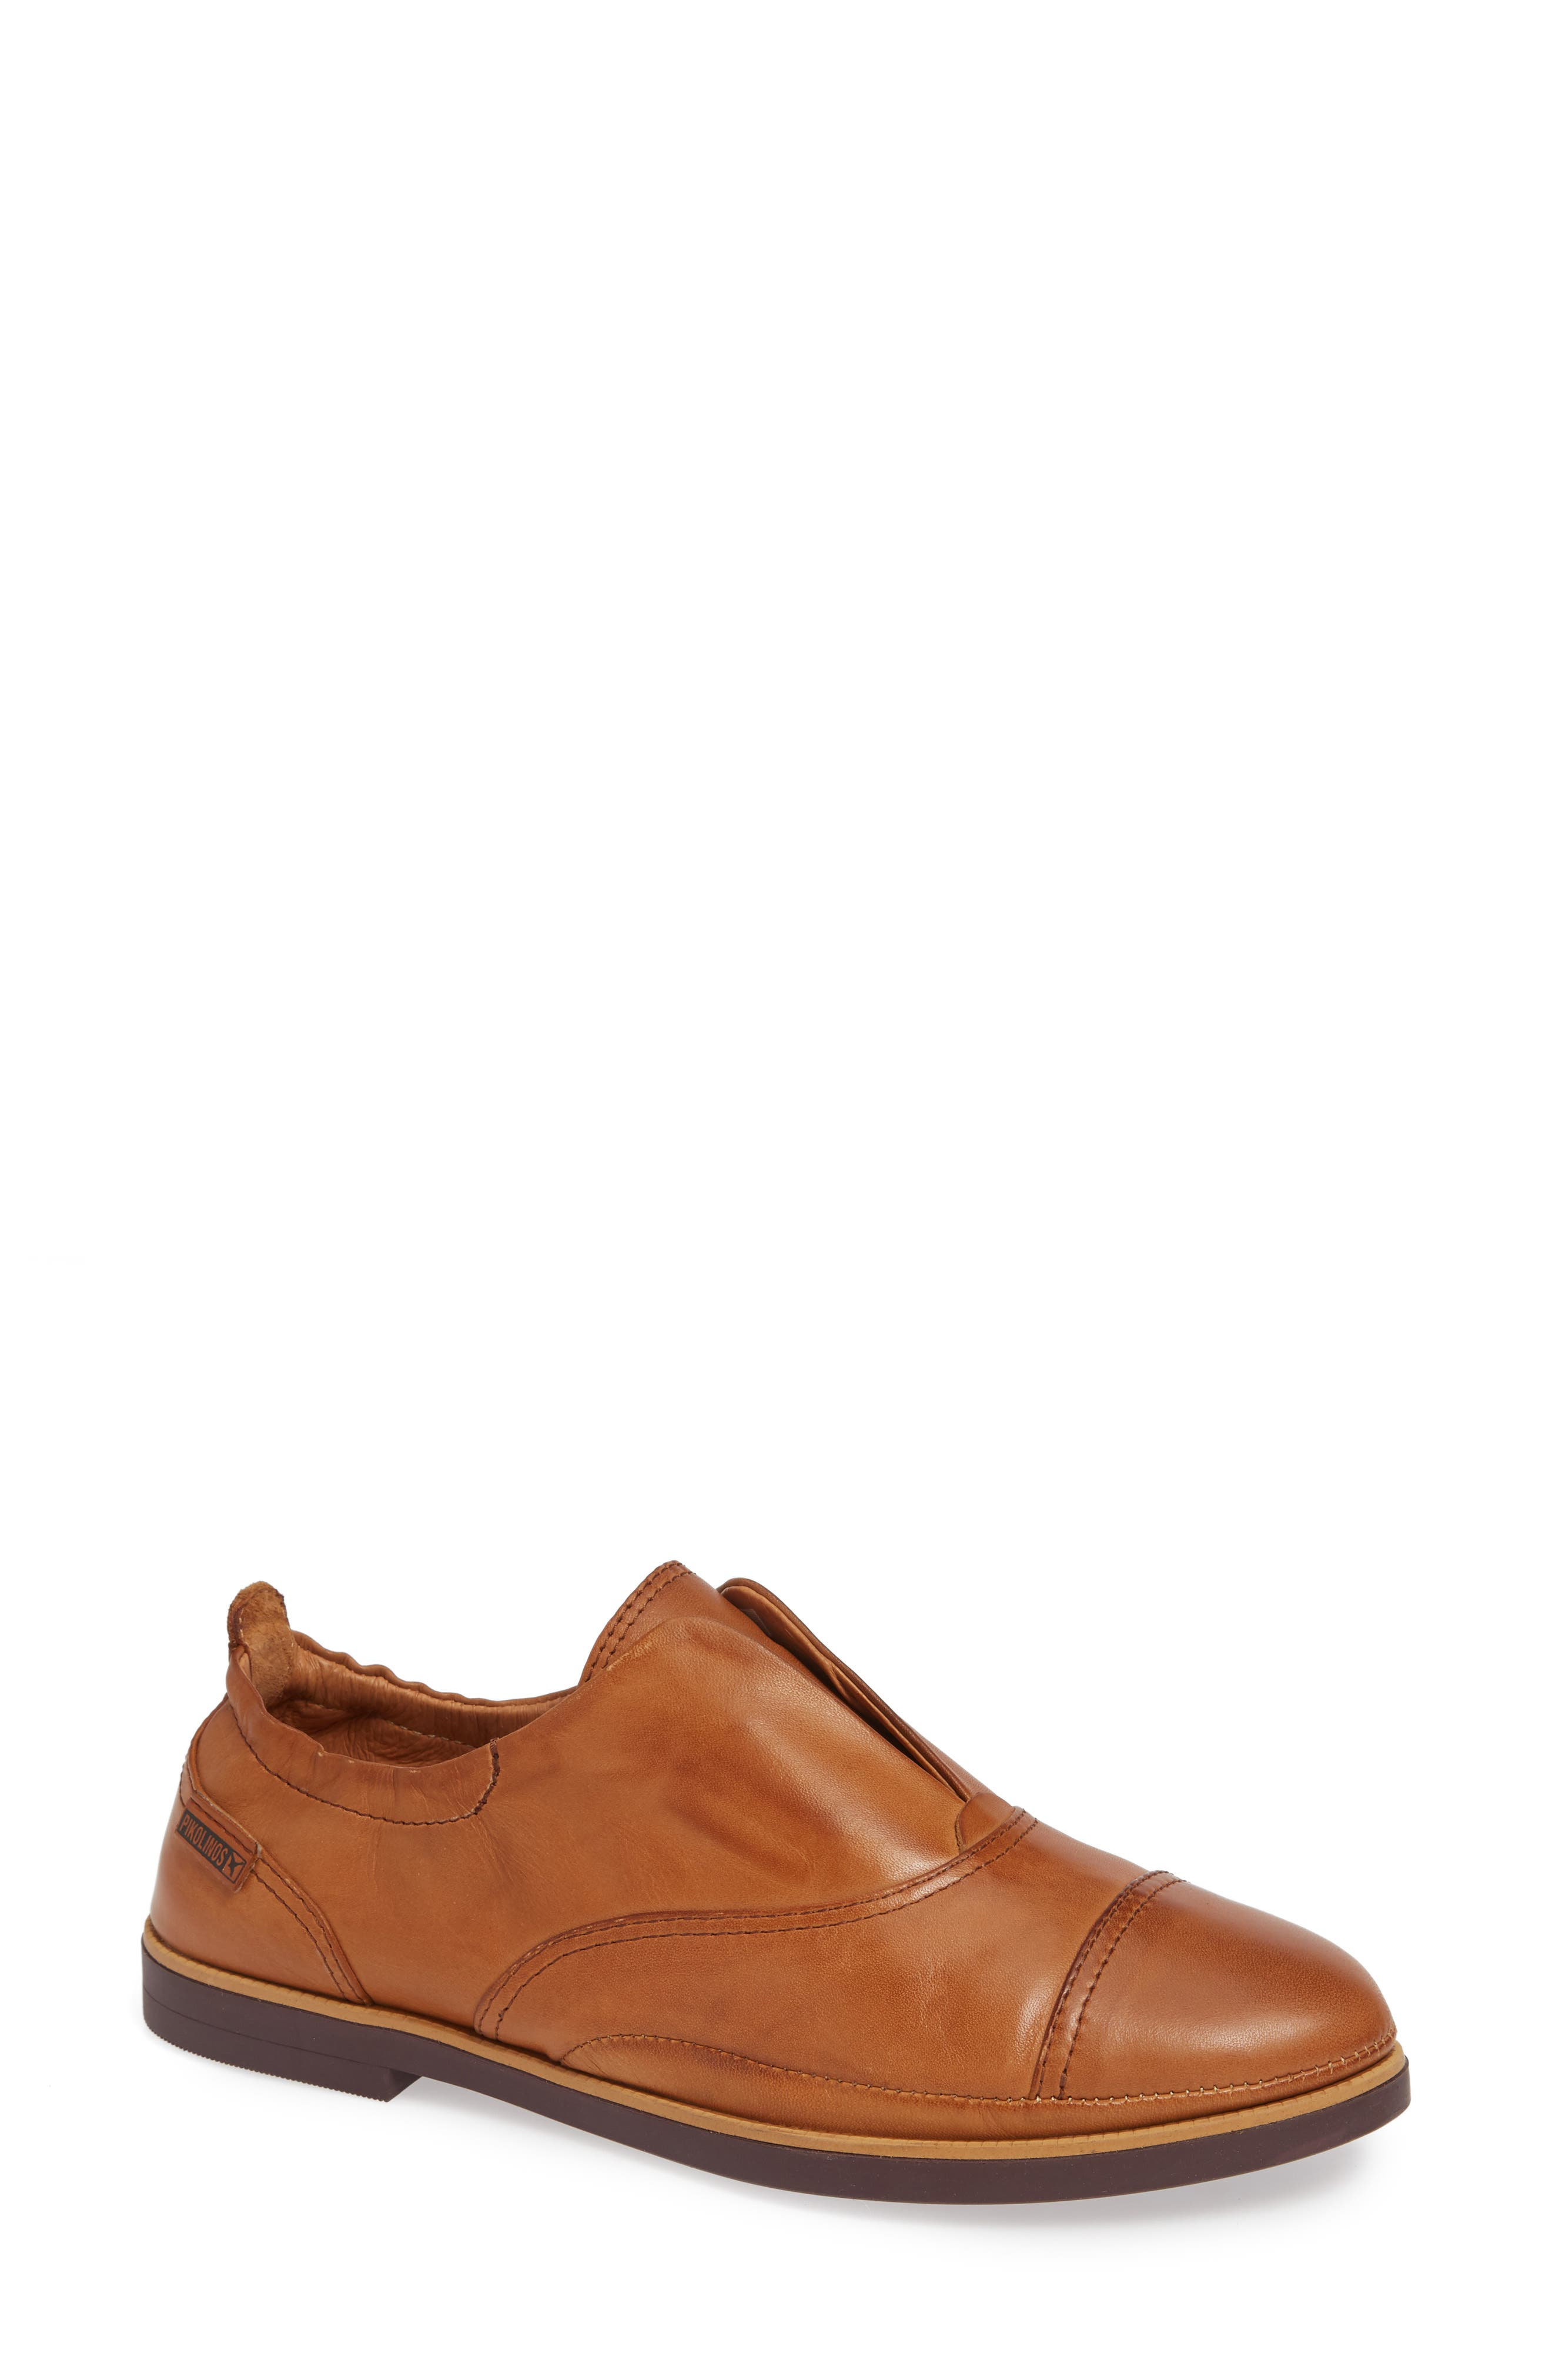 Santorini Colorblock Laceless Oxford,                         Main,                         color, BRANDY LEATHER